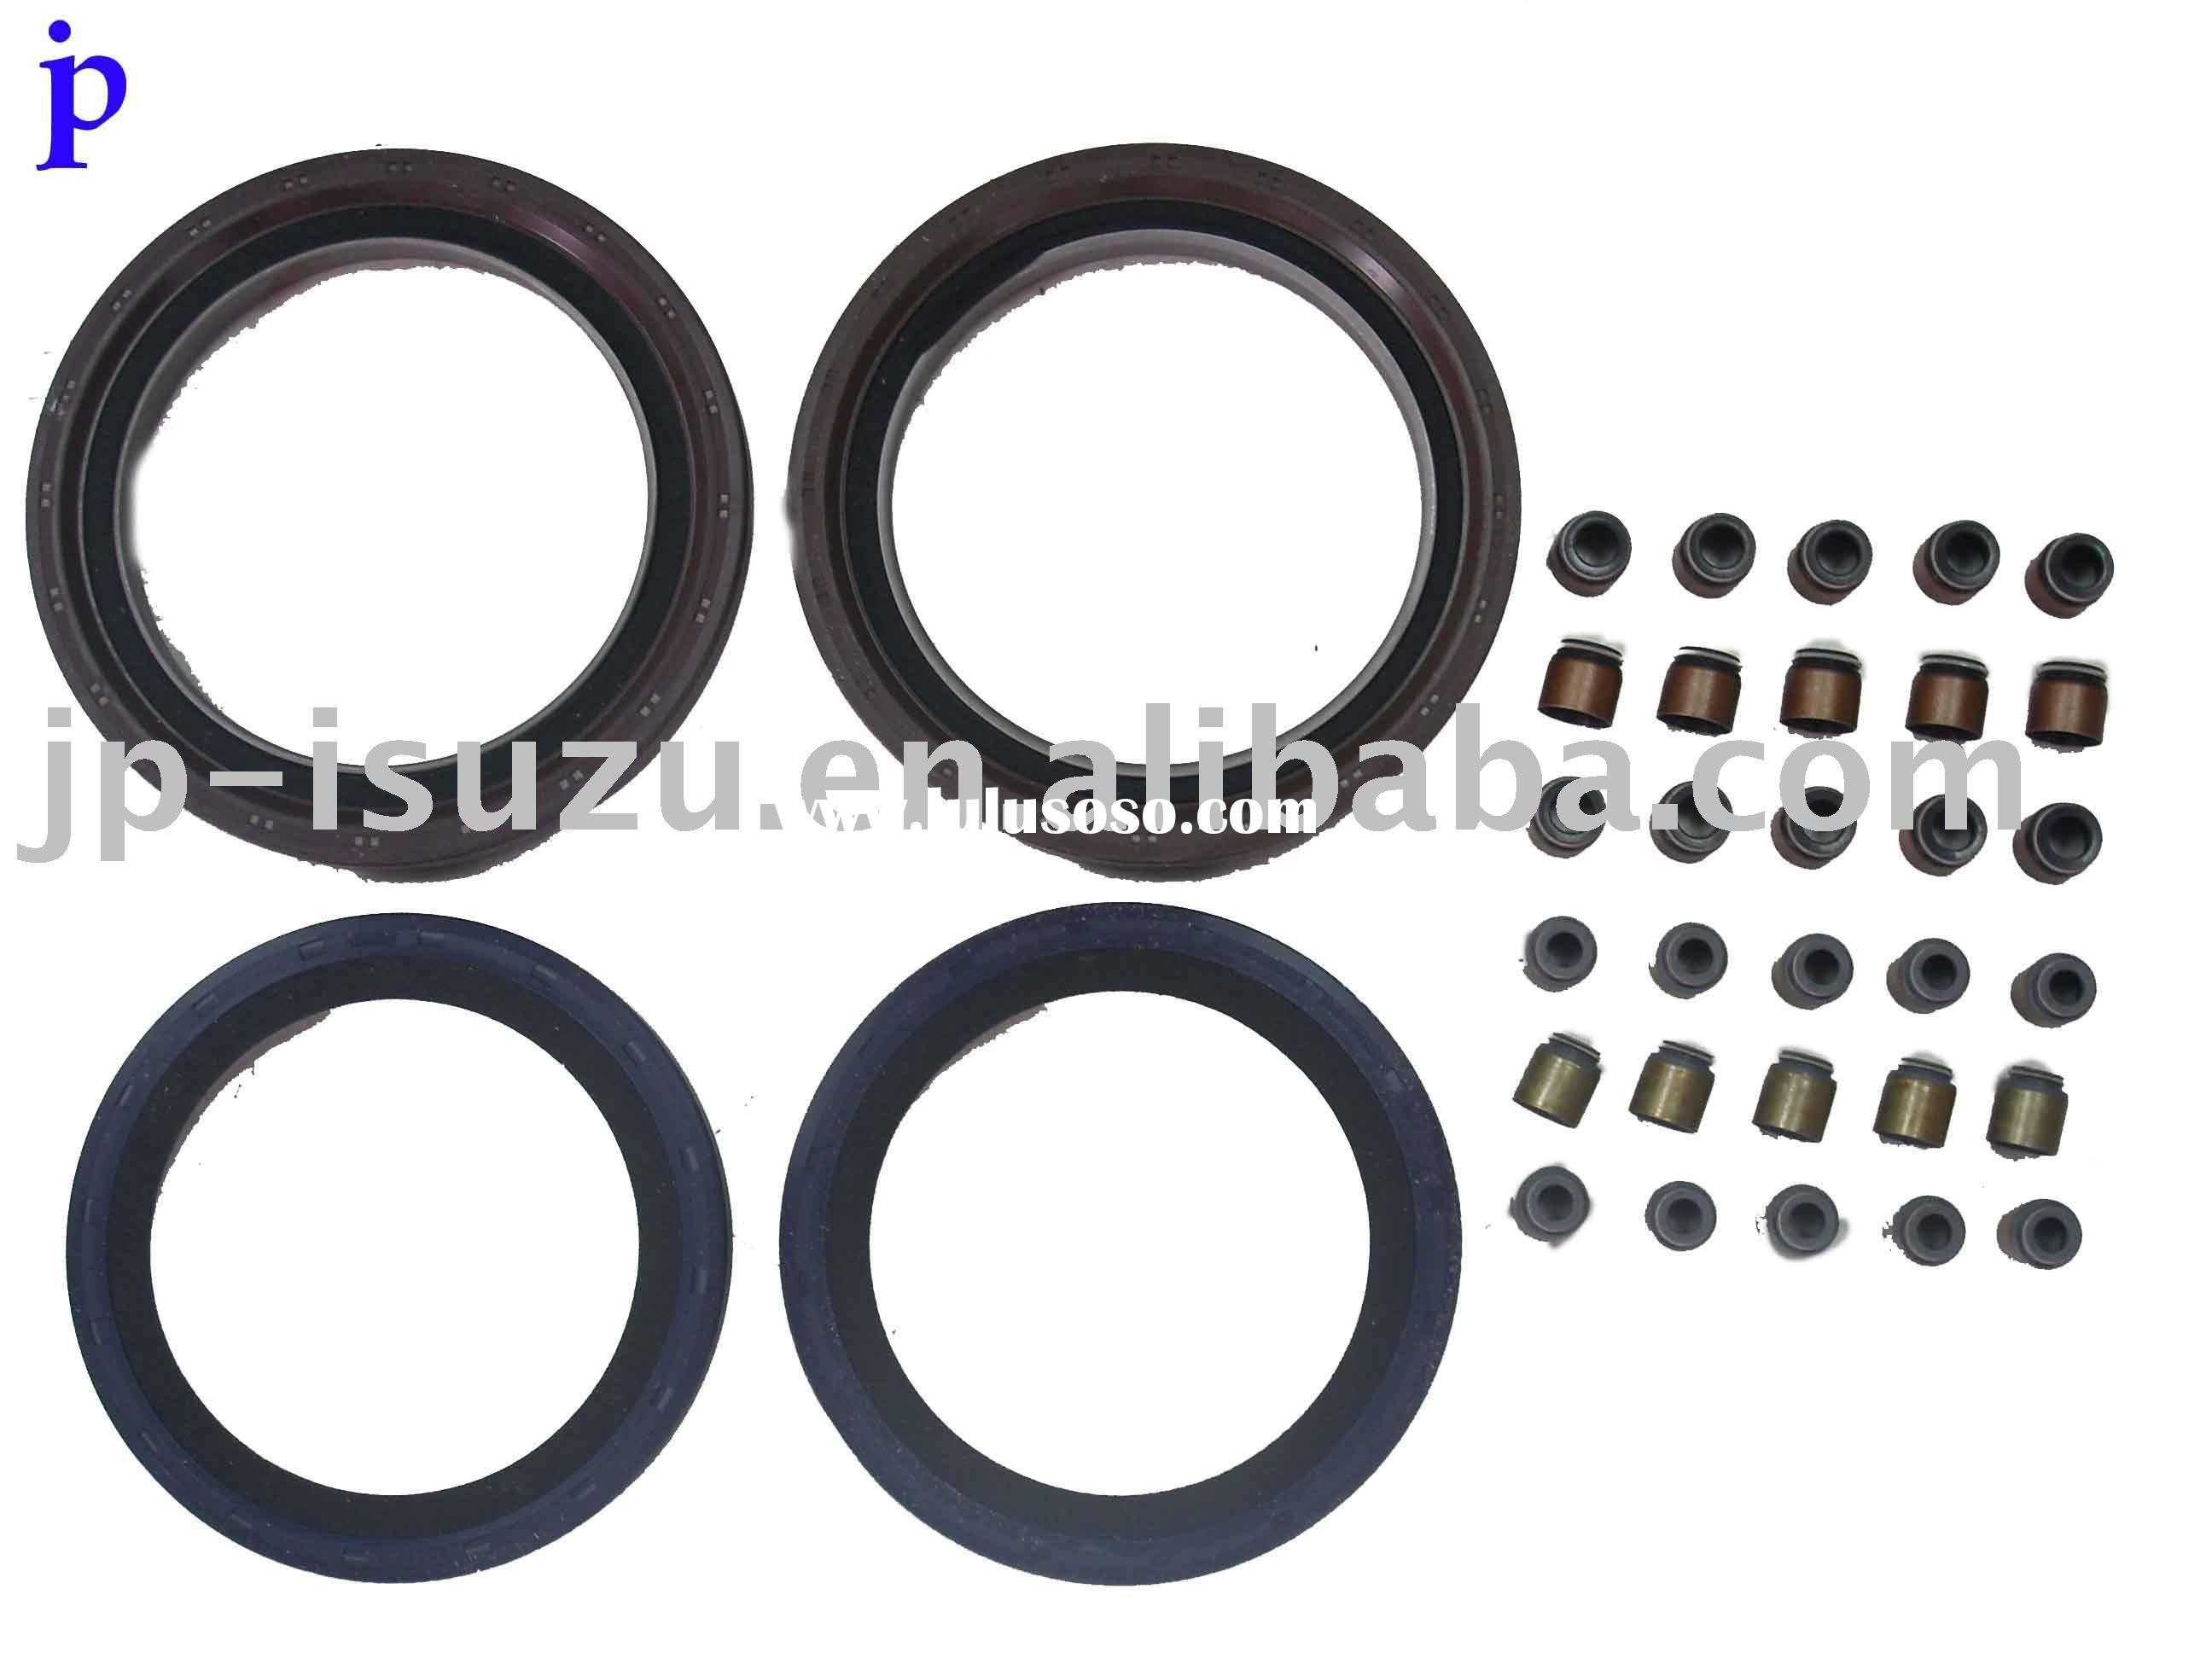 Oil Seal for Crankshaft. Engine Valve, O-ring, BZ4365E, BZ4425E, BZ4764E, BZ4764E